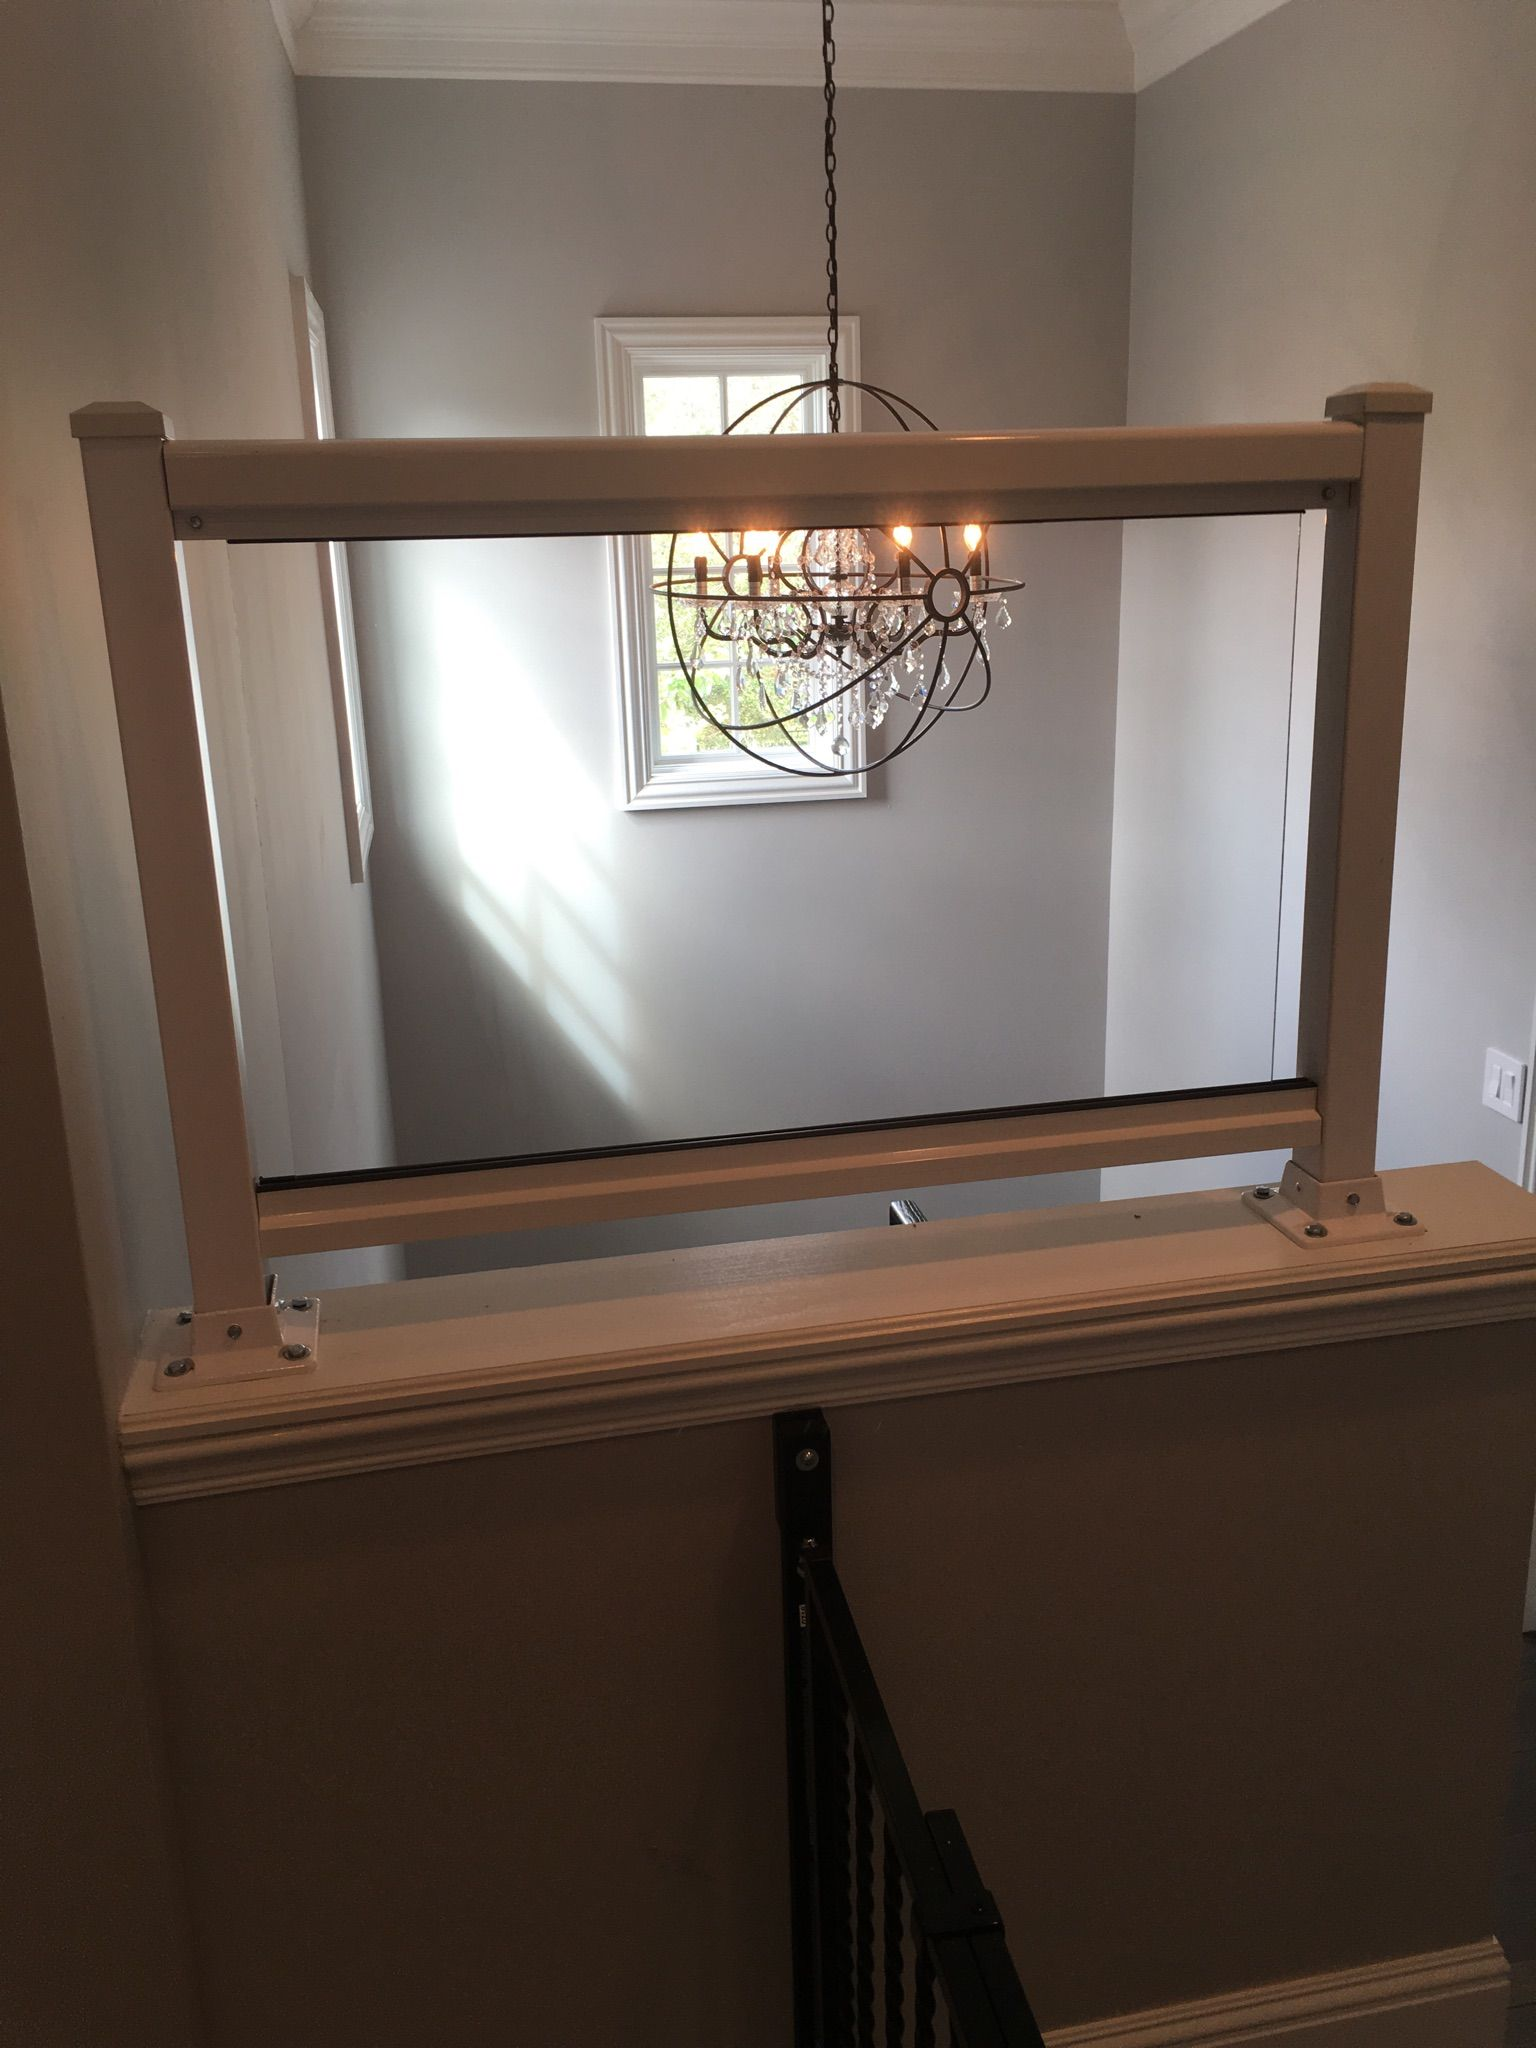 Our custom plexiglass walls are easy to install and can be